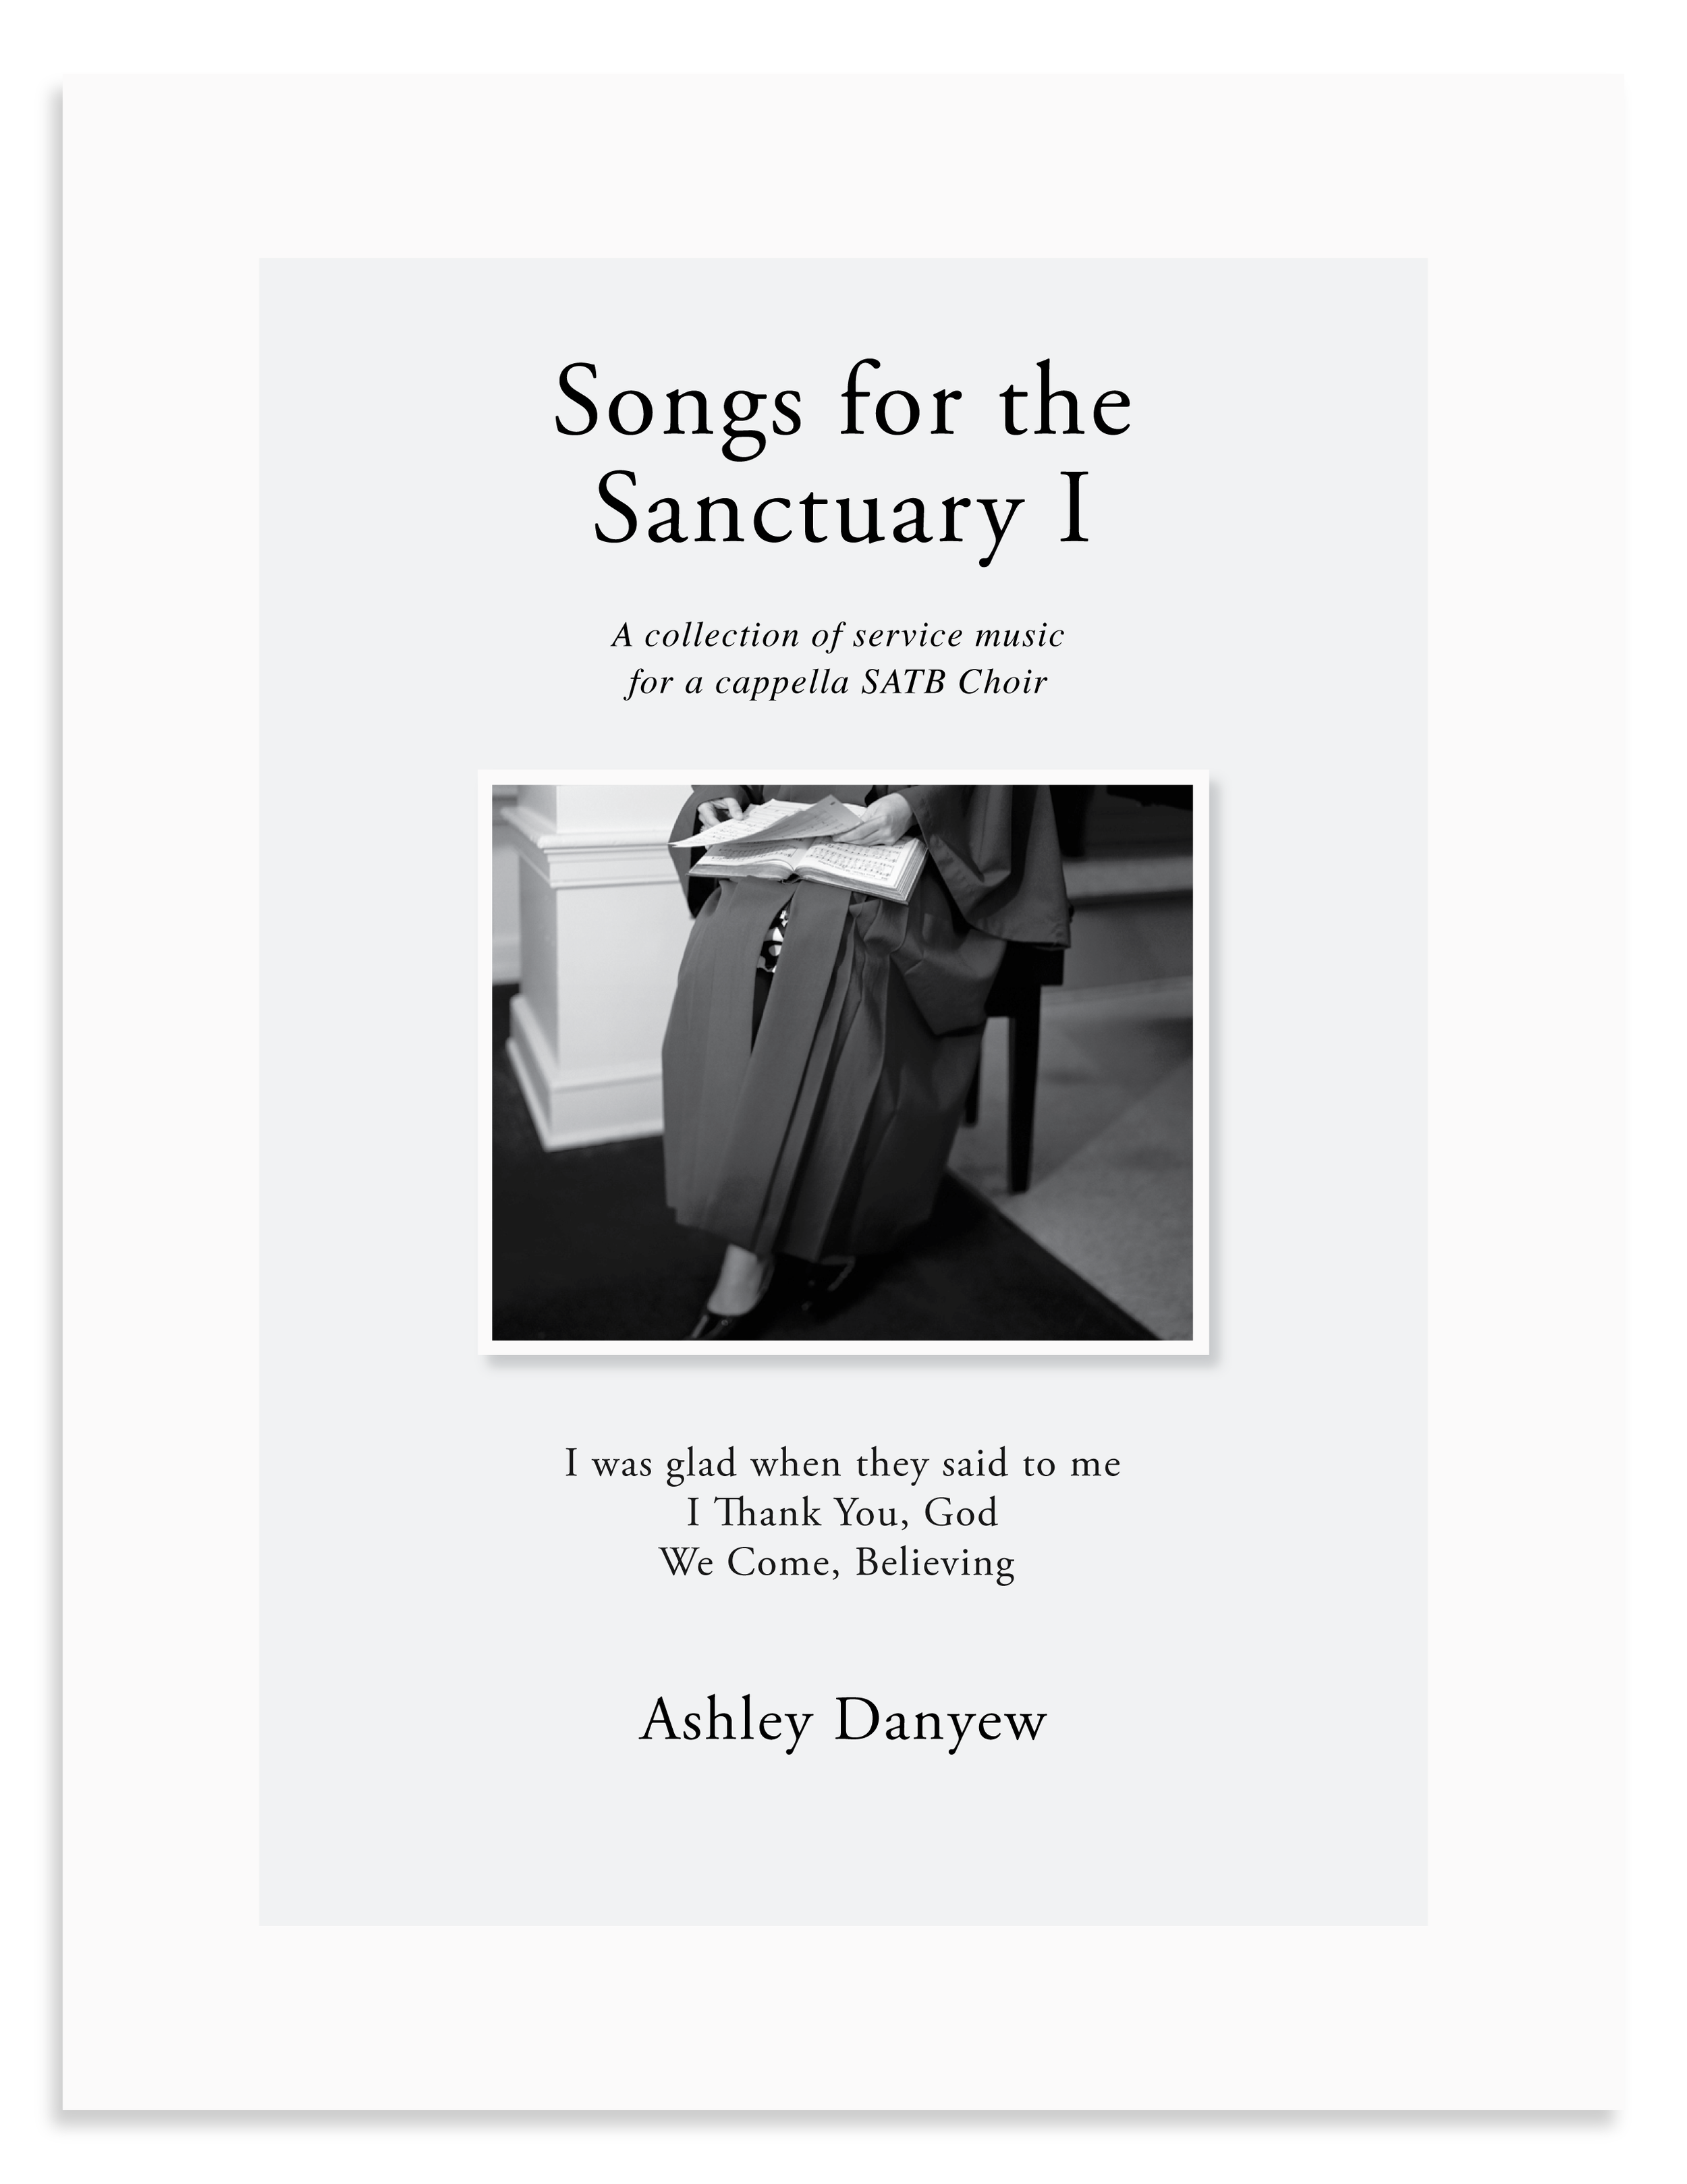 Songs for the Sanctuary I_Choral Service Music by Ashley Danyew.png